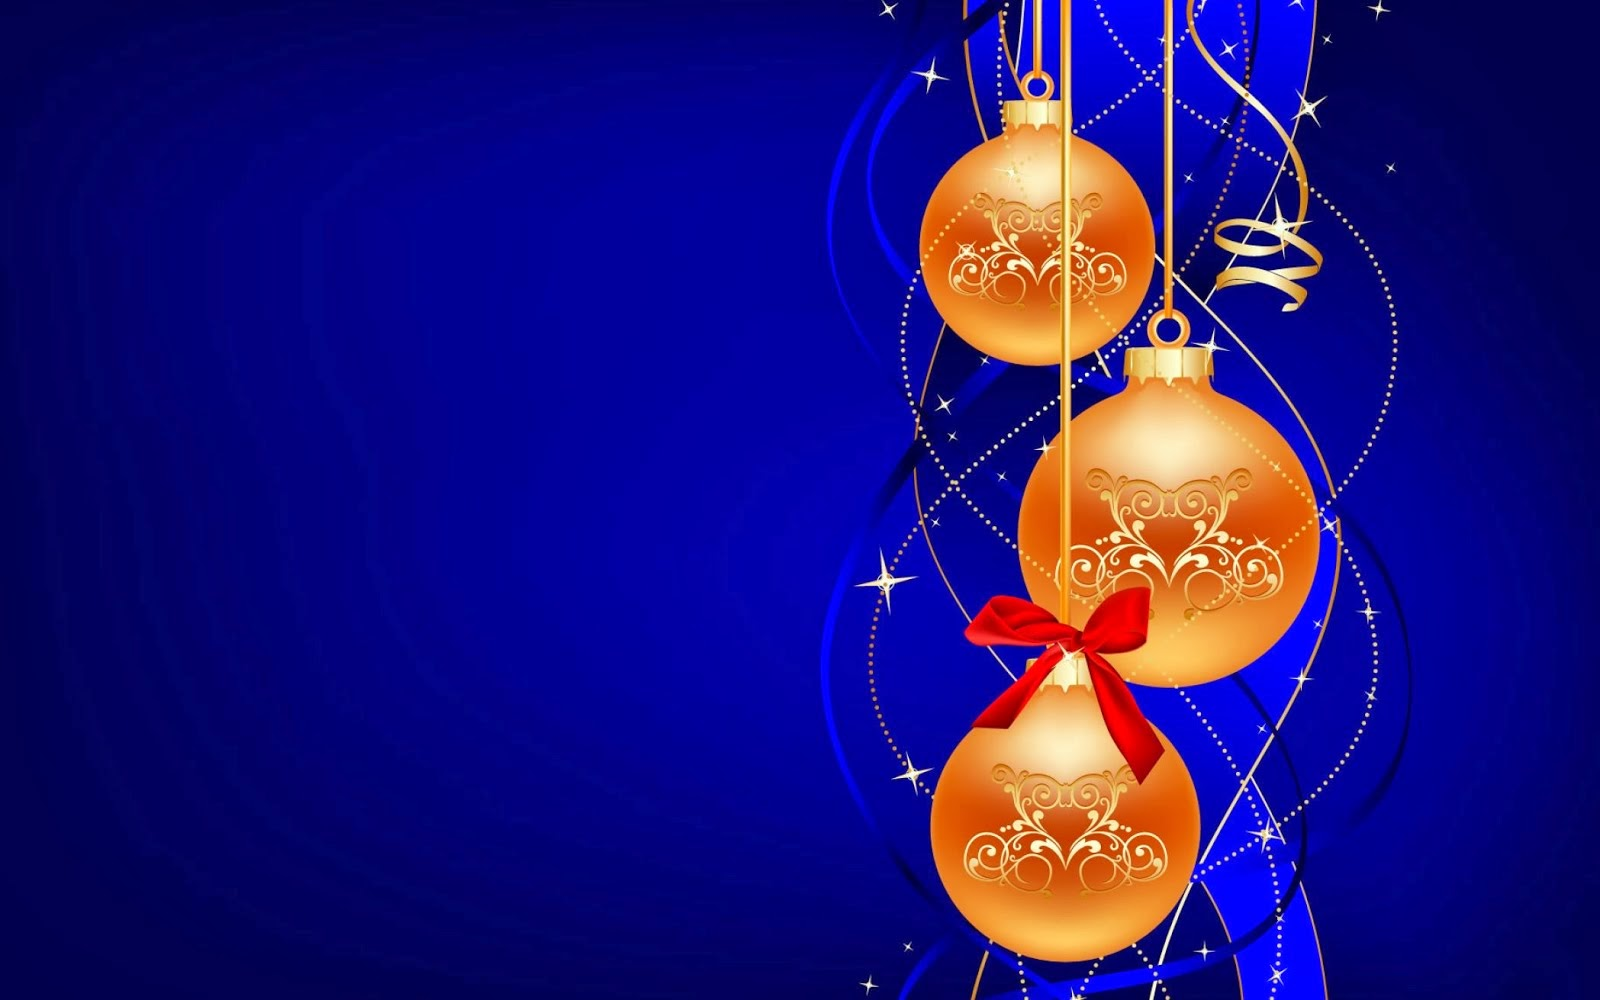 animated christmas wallpaper for windows 7 wallpaper